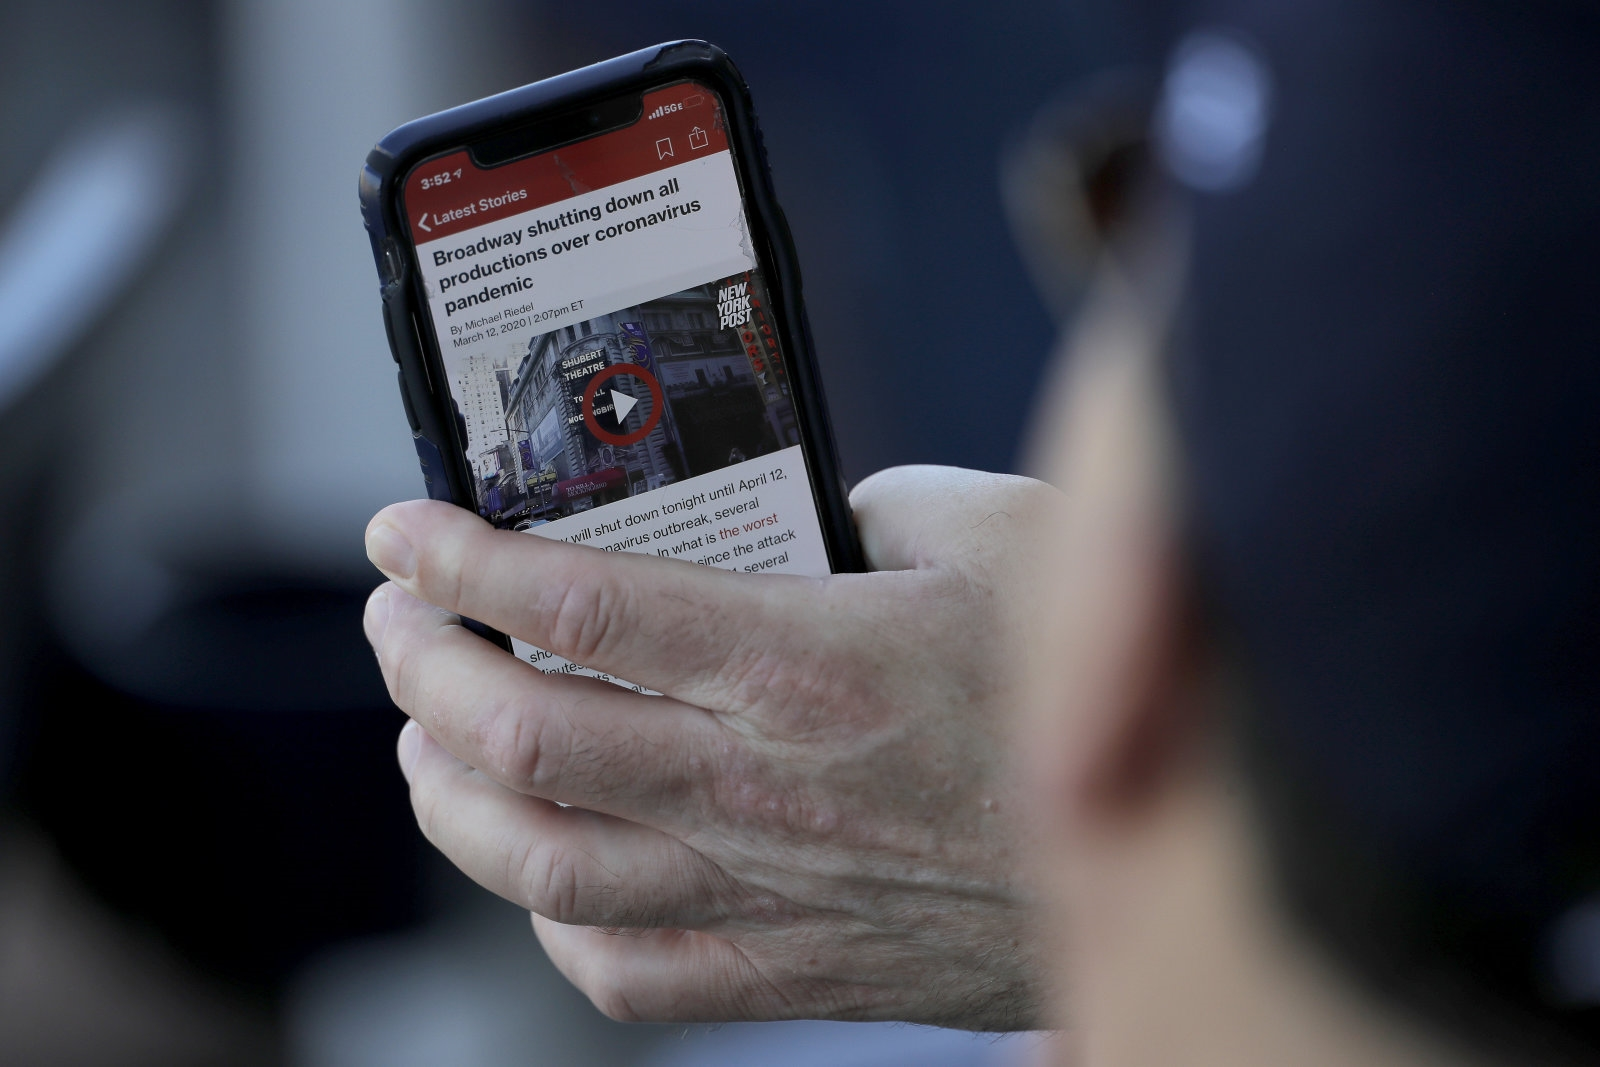 US officials use mobile ad location data to study how COVID-19 spreads | DeviceDaily.com